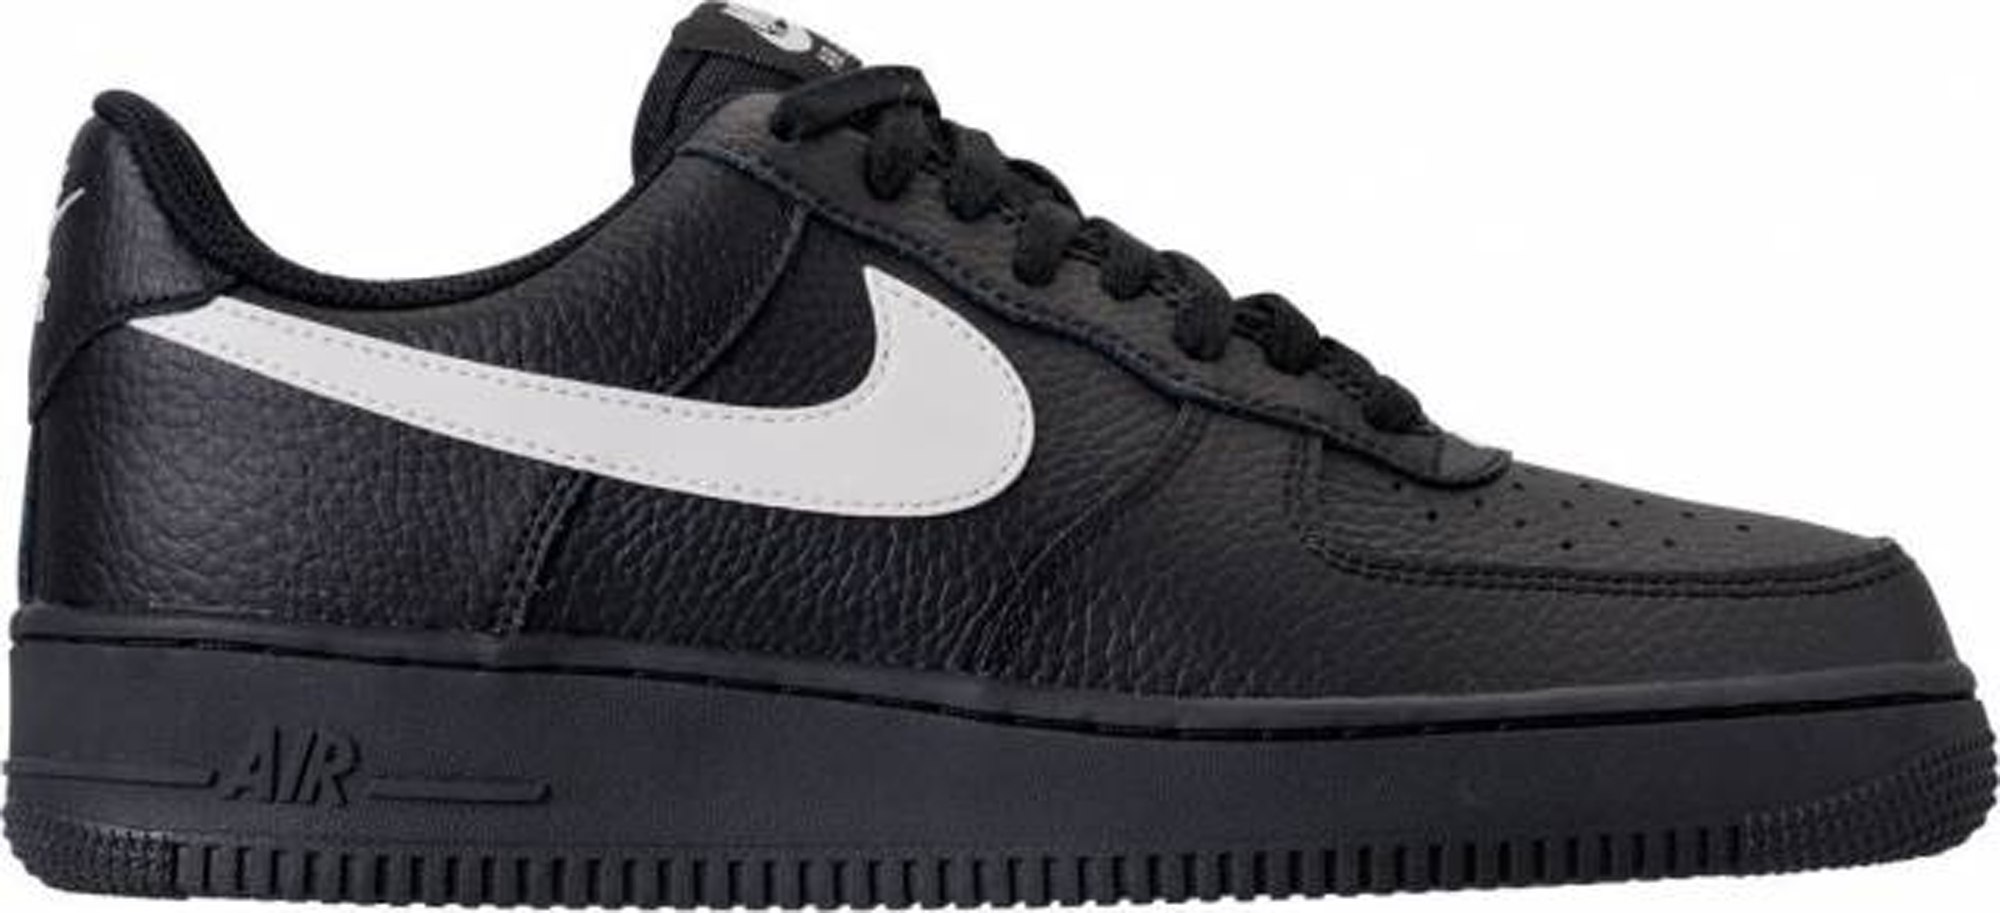 Hommes Nike Air Force 1 Low Vente Auto